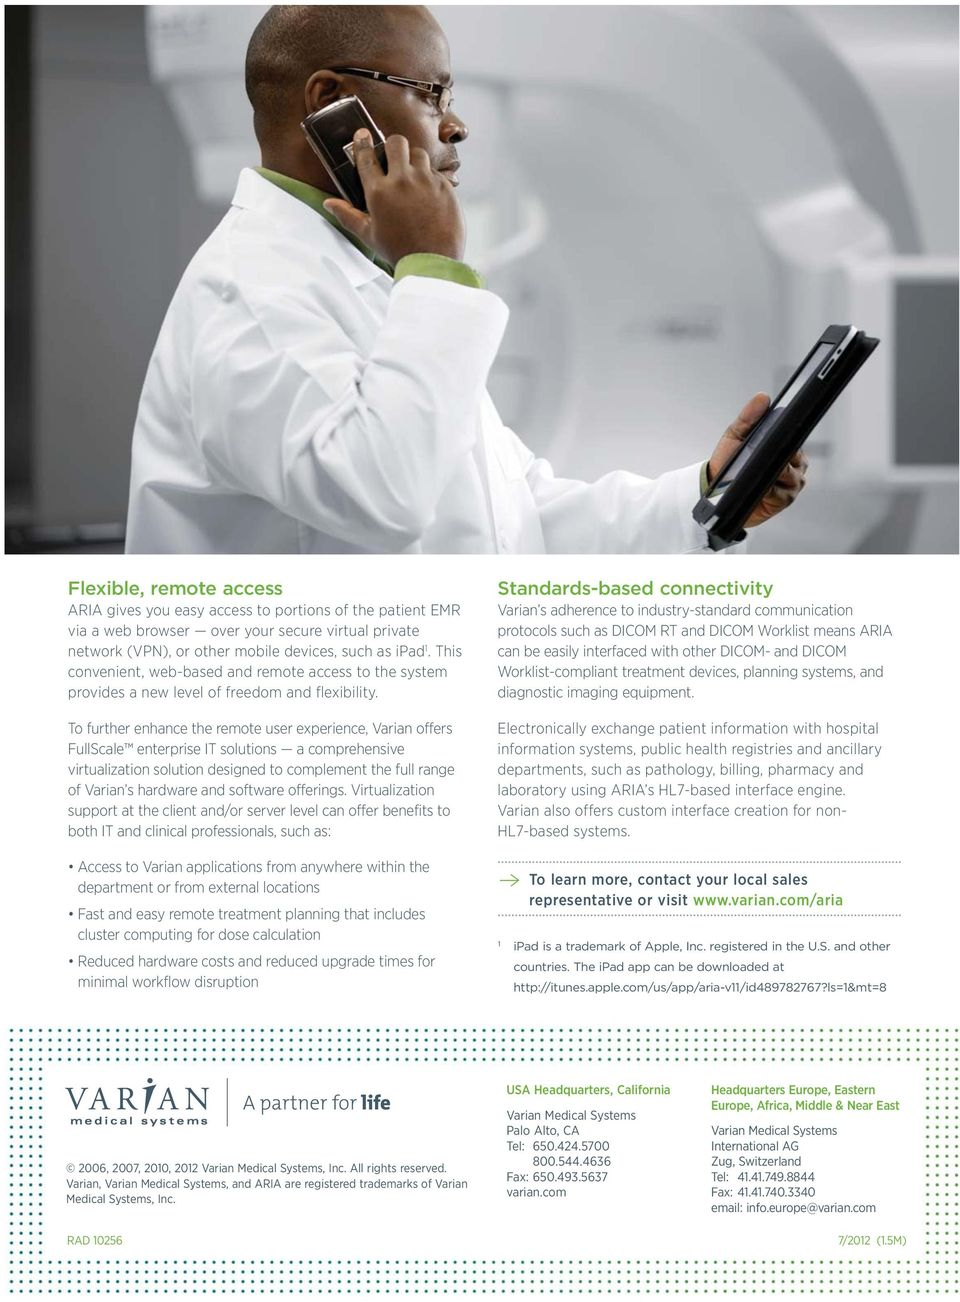 To further enhance the remote user experience, Varian offers FullScale enterprise IT solutions a comprehensive virtualization solution designed to complement the full range of Varian s hardware and